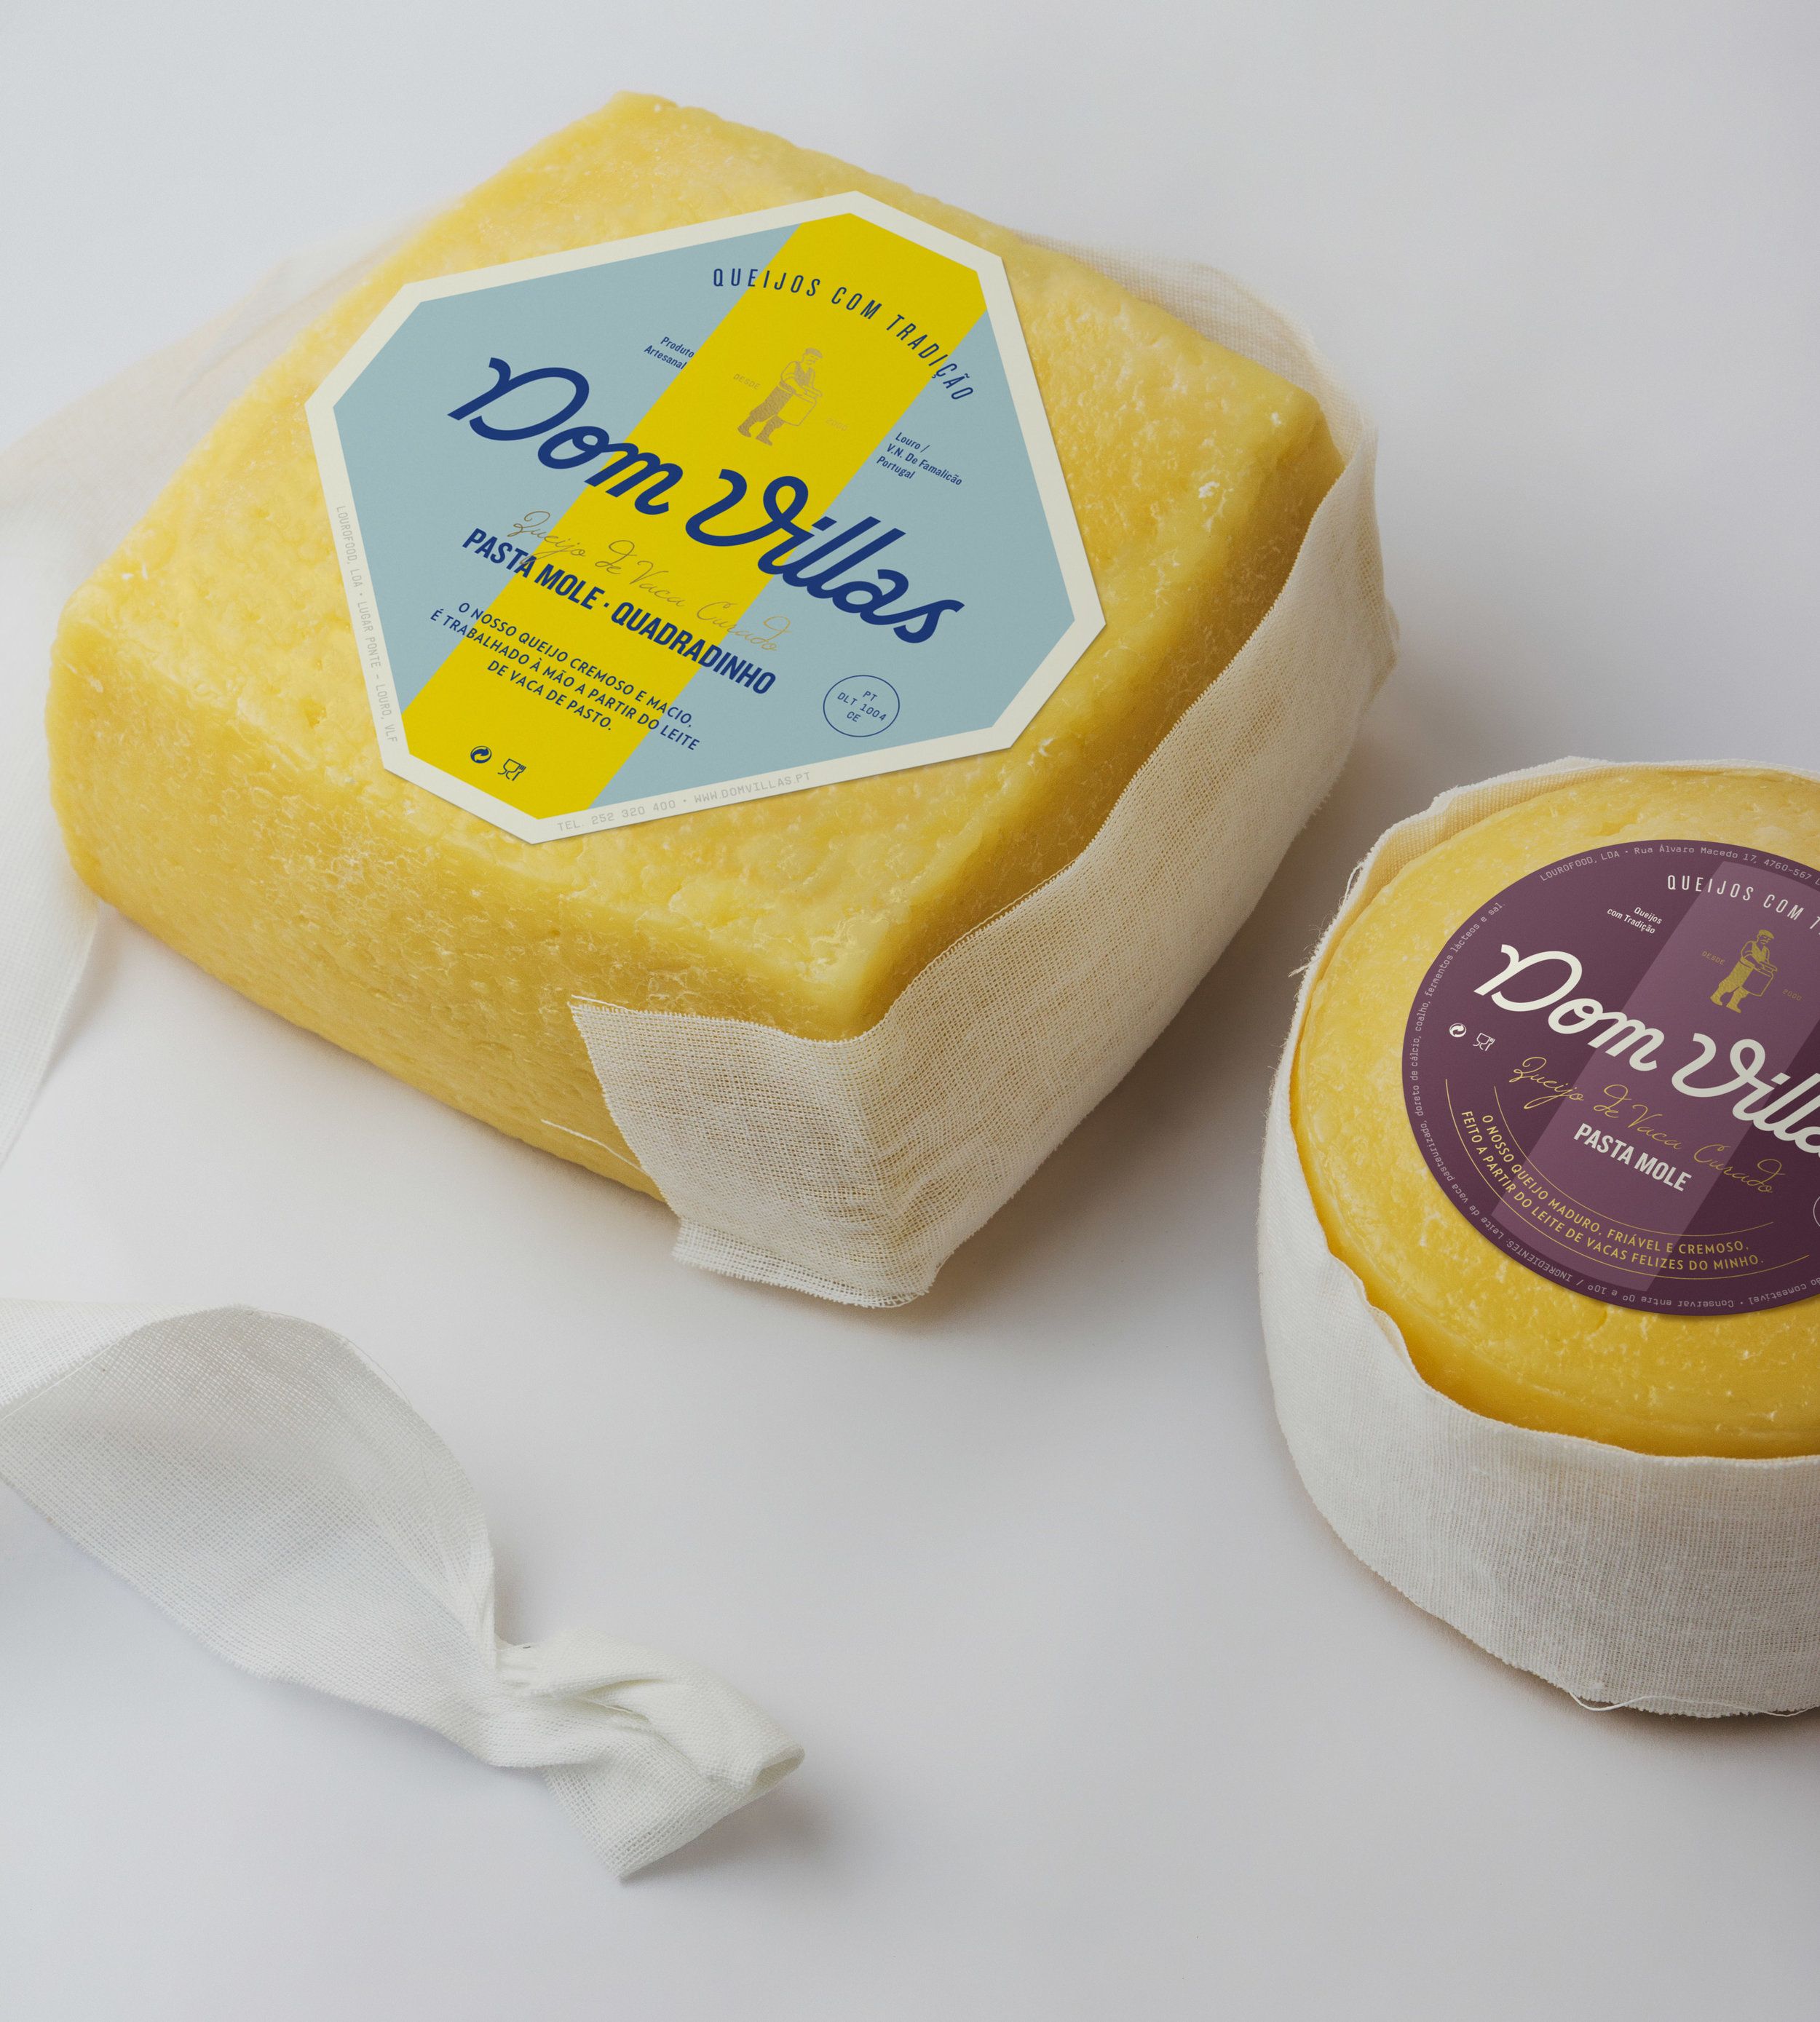 Cheeses+Dom+Villas+identity+and+packaging+by+www.gen-2.jpg